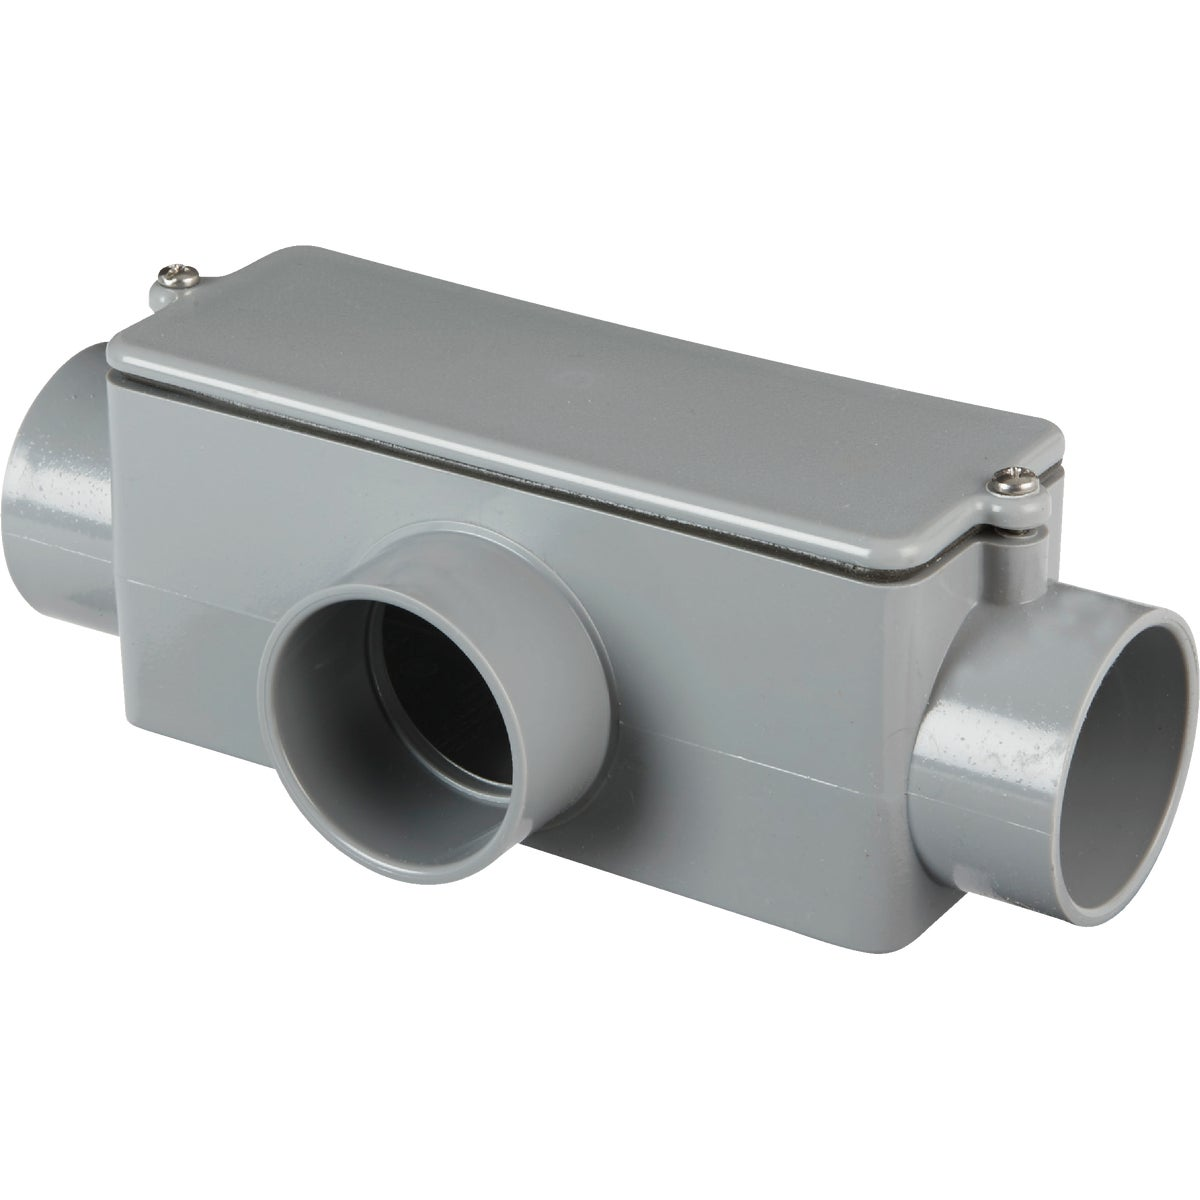 "1-1/2"" T ACCESS FITTING - E983HCAR by Thomas & Betts"